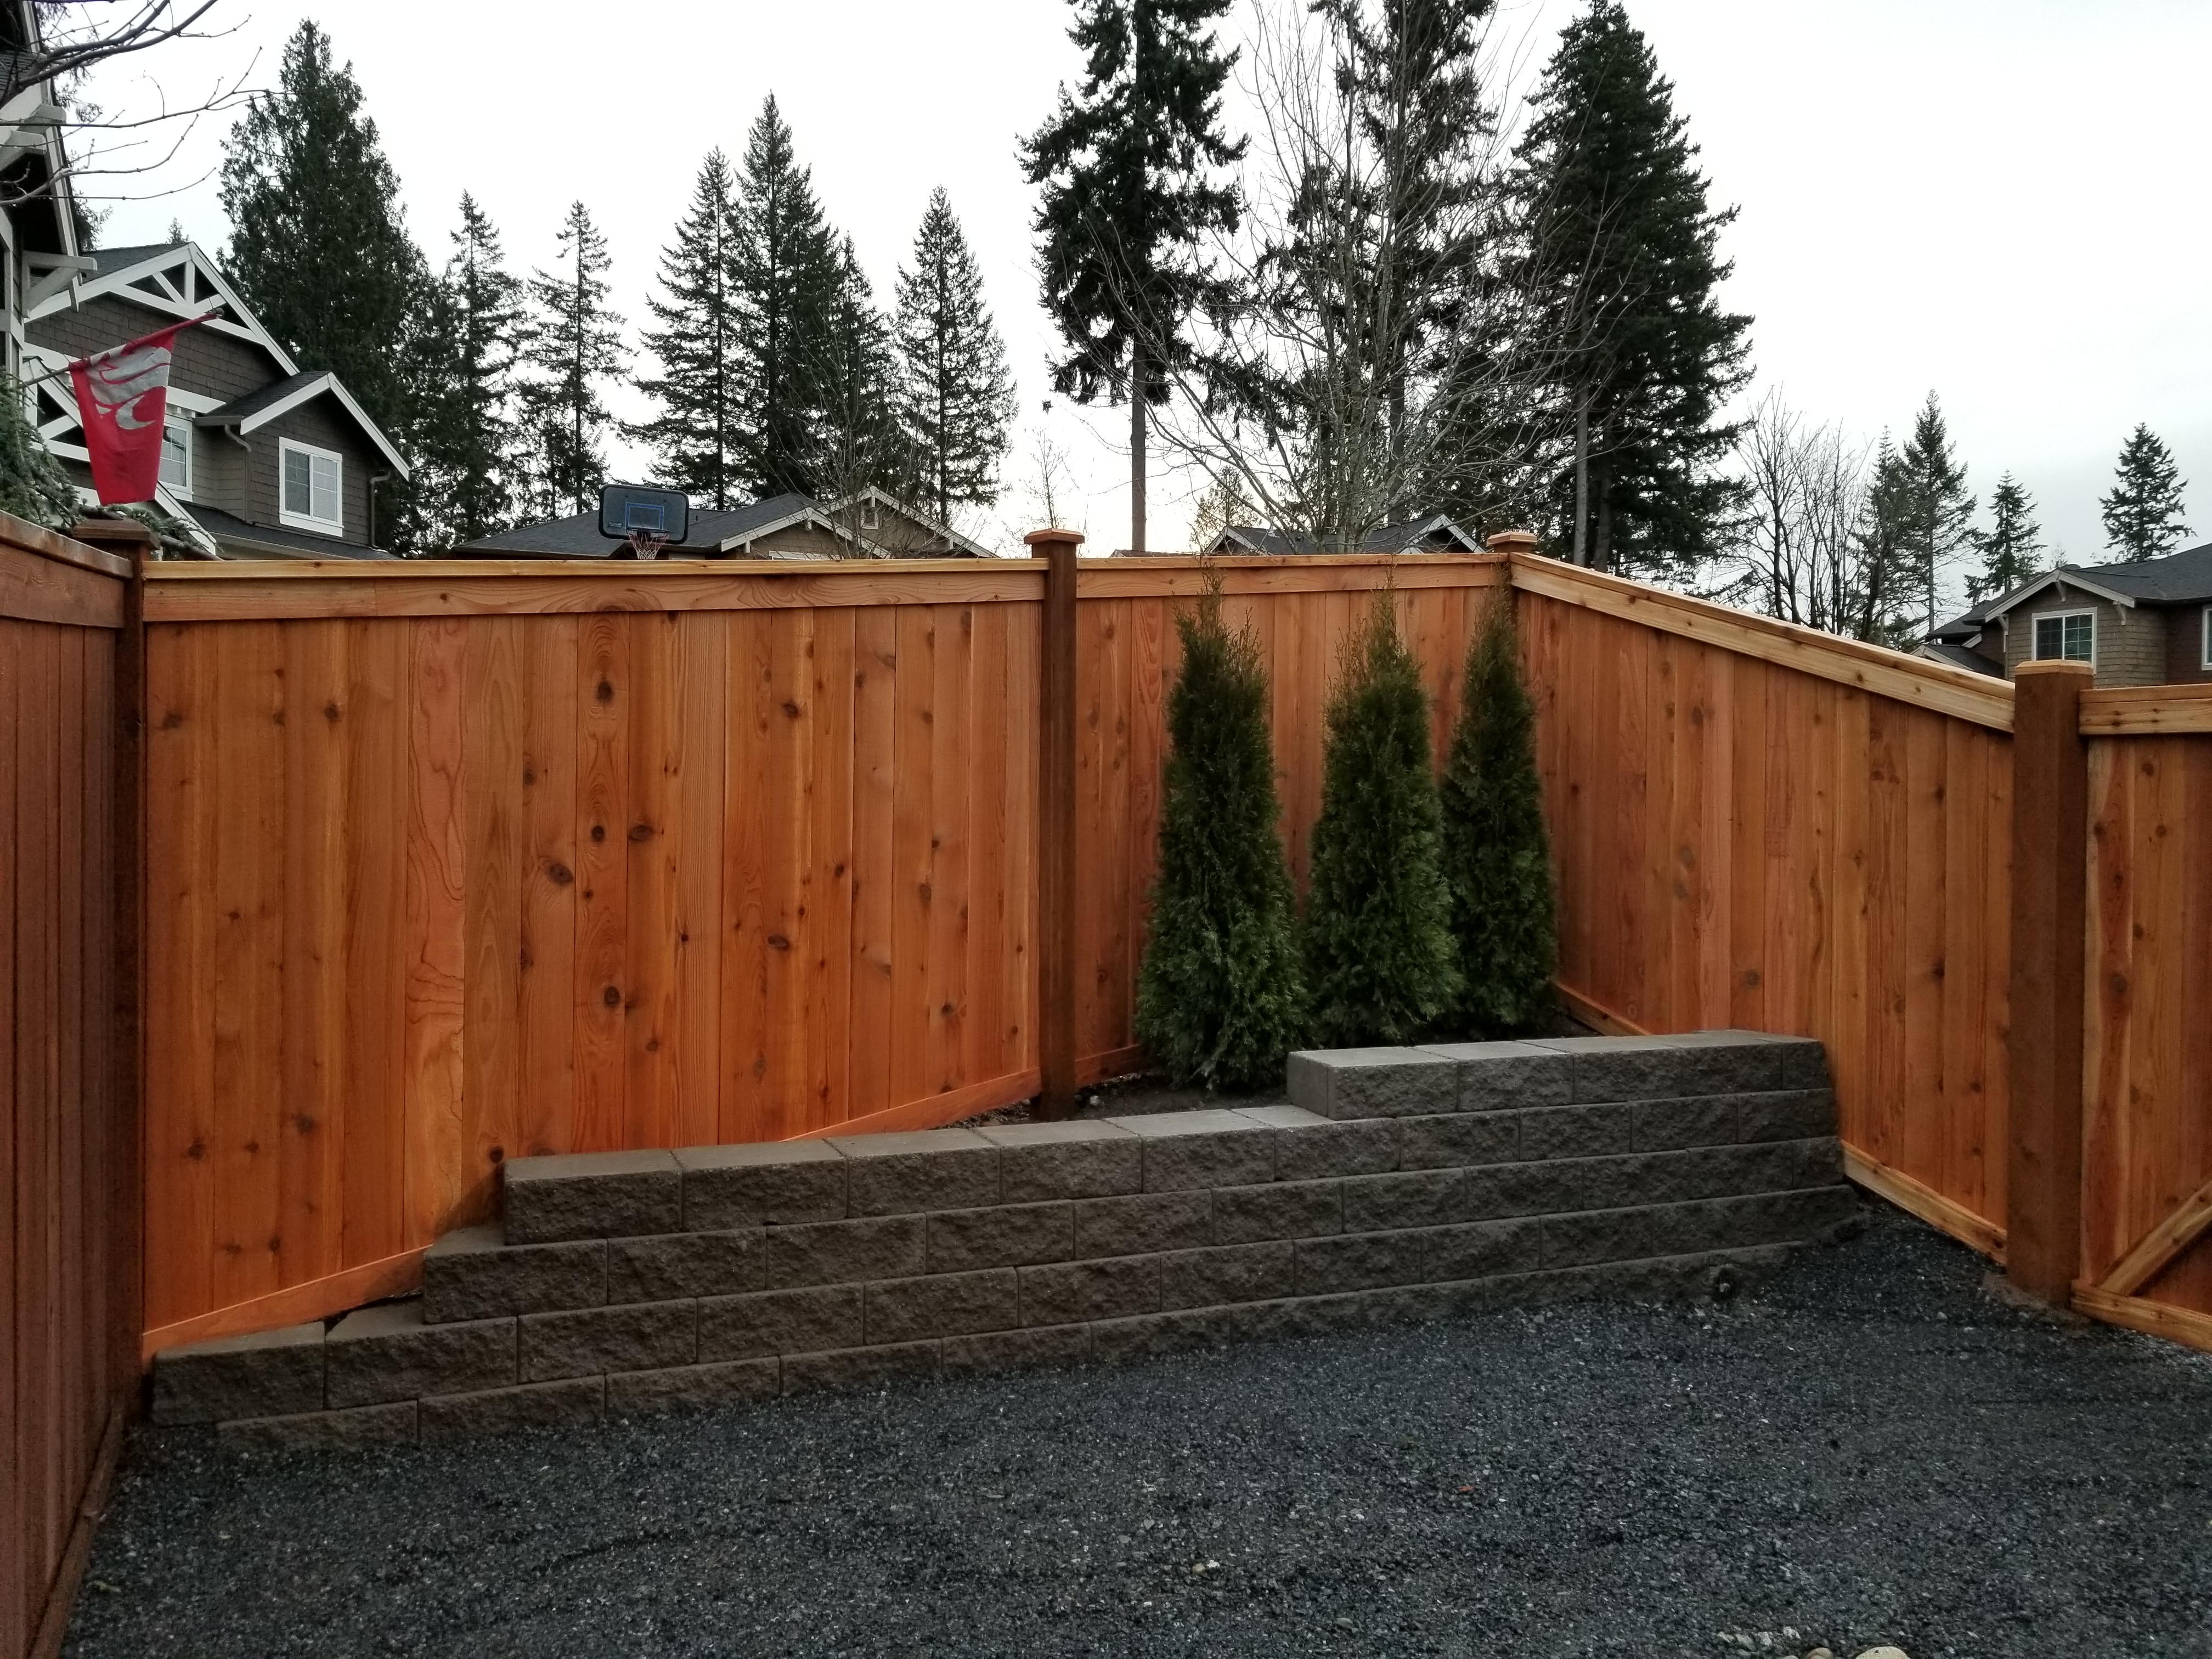 A wooden fence surrounding trees and a retaining wall.